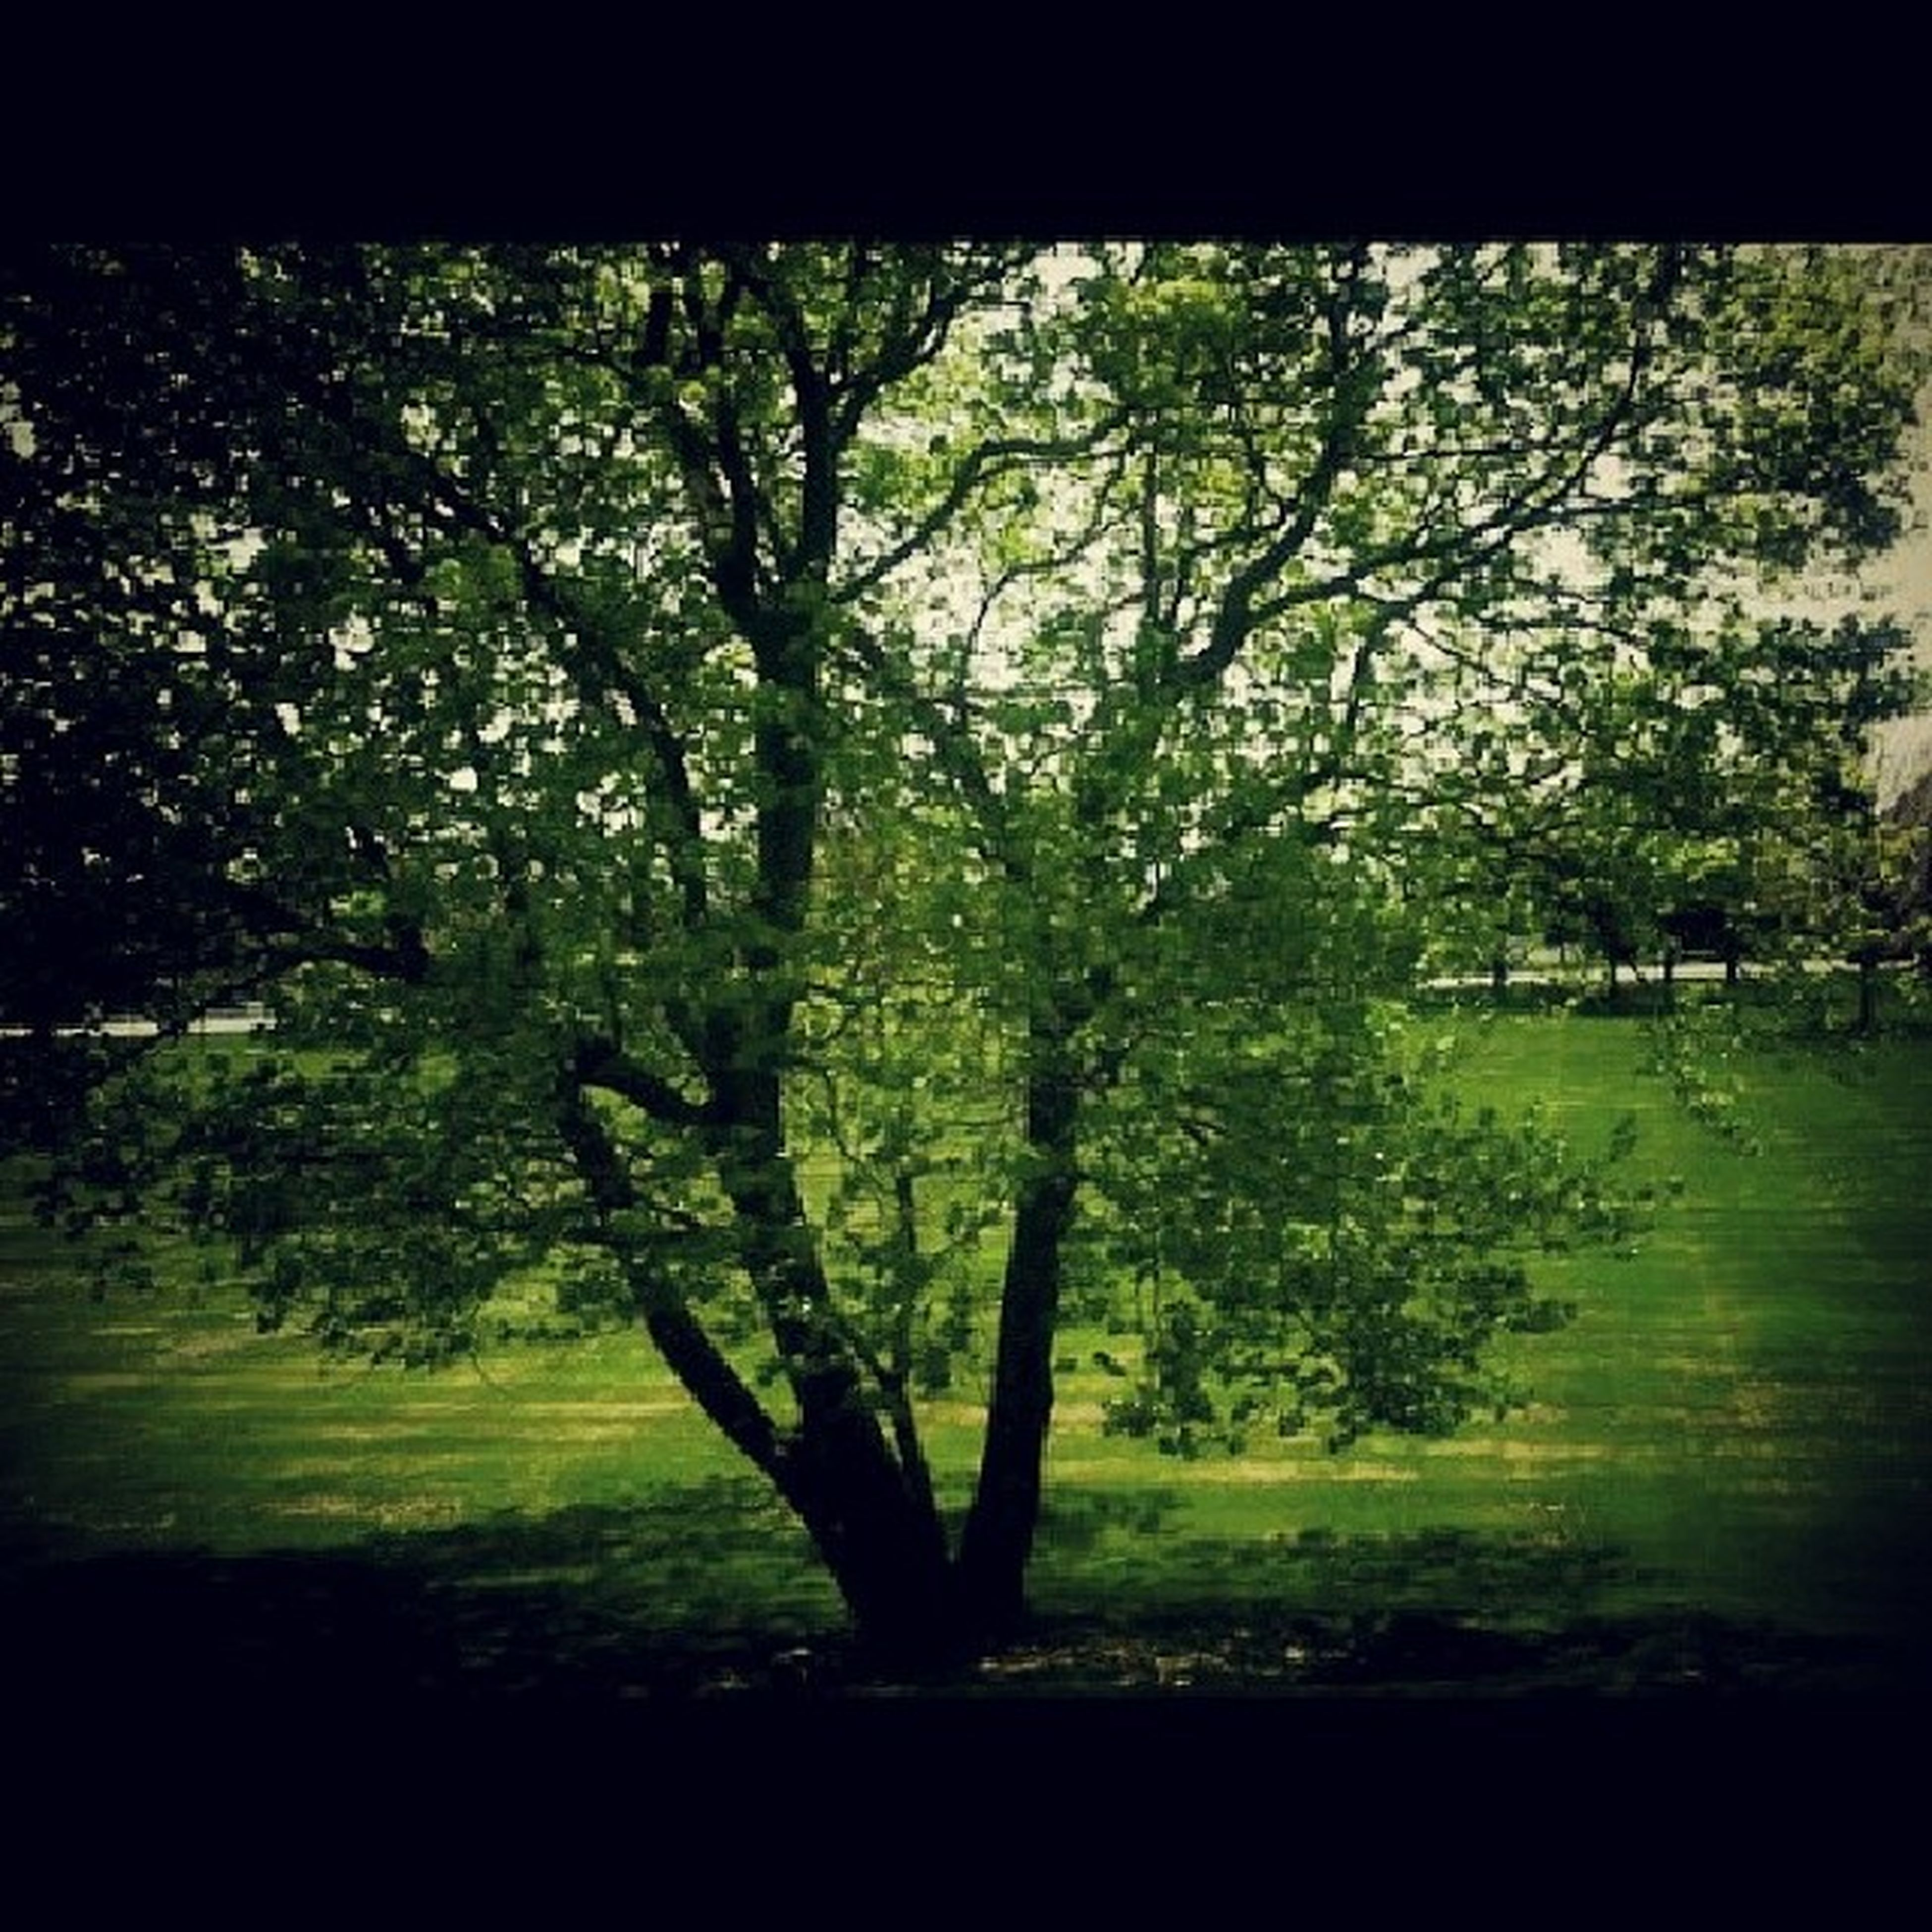 tree, branch, growth, tranquility, tranquil scene, green color, nature, beauty in nature, tree trunk, transfer print, scenics, field, auto post production filter, park - man made space, landscape, grass, day, park, sunlight, outdoors